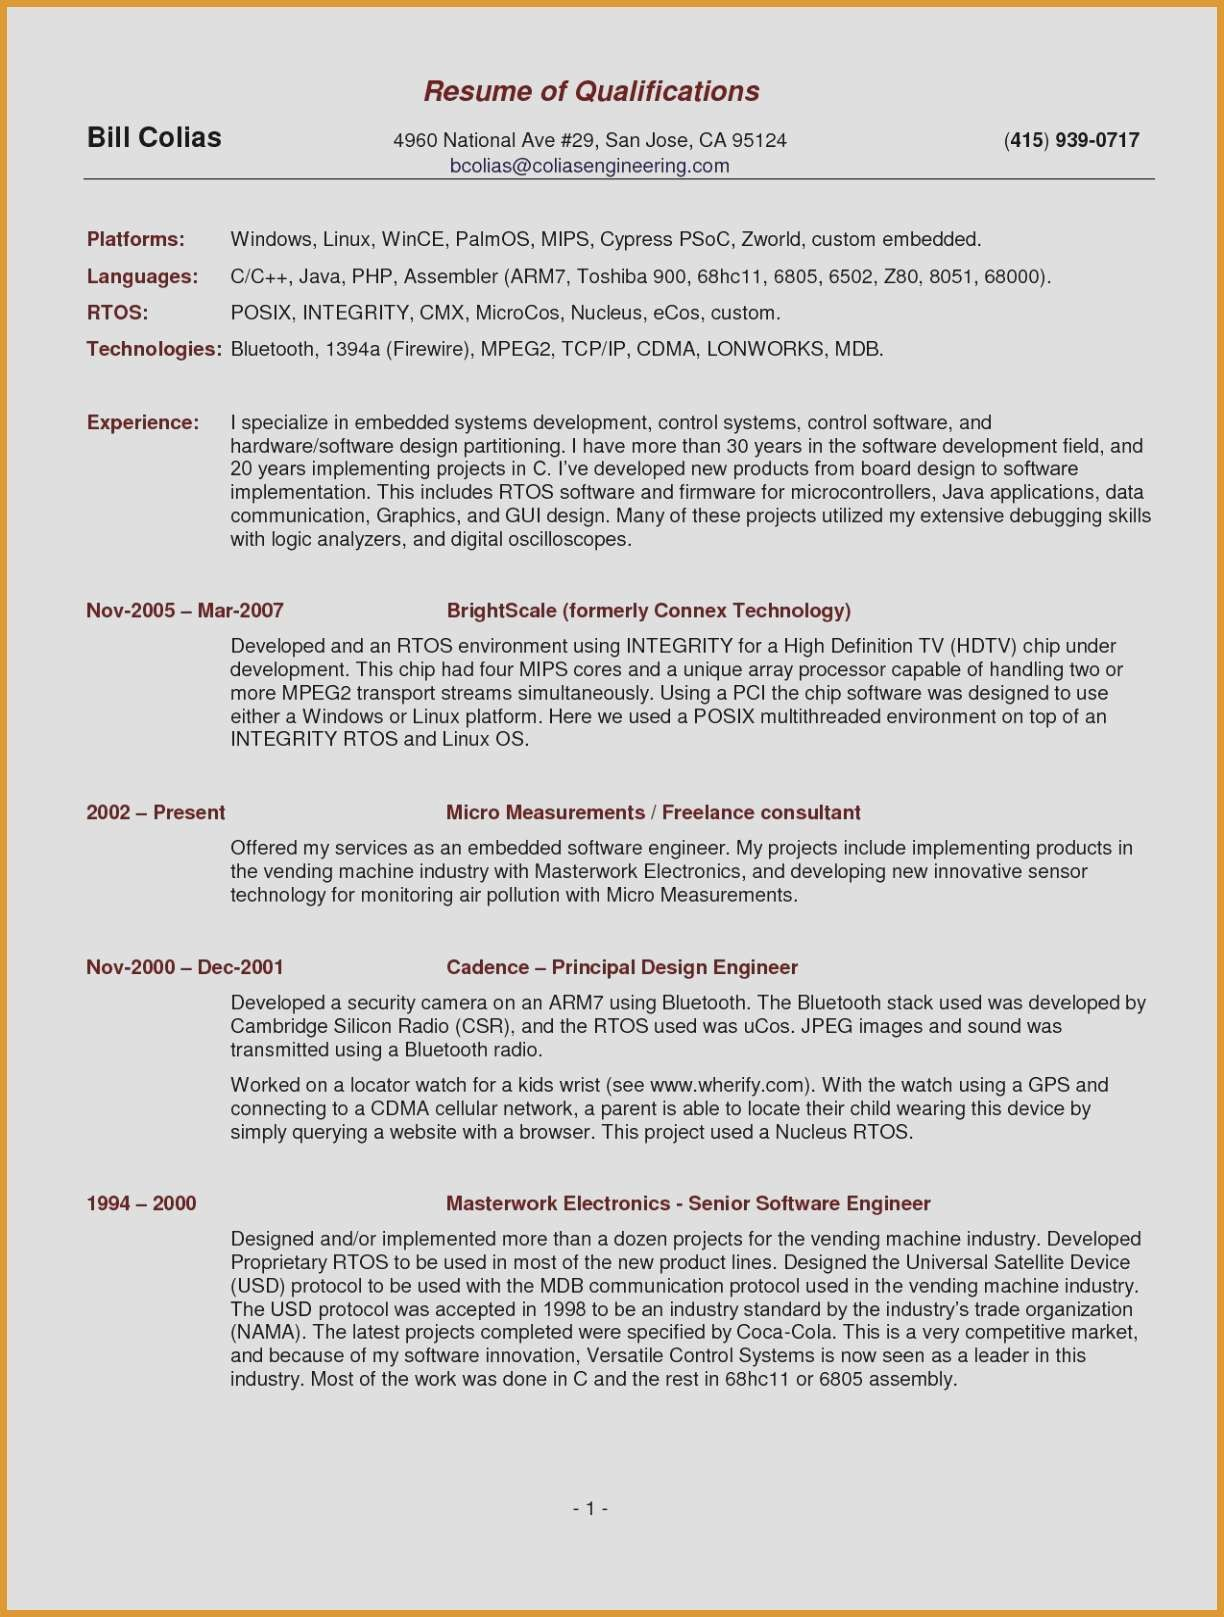 Free Sample Resume Templates - Sample Resume Templates Beautiful Resume 52 New Cv Templates Full Hd